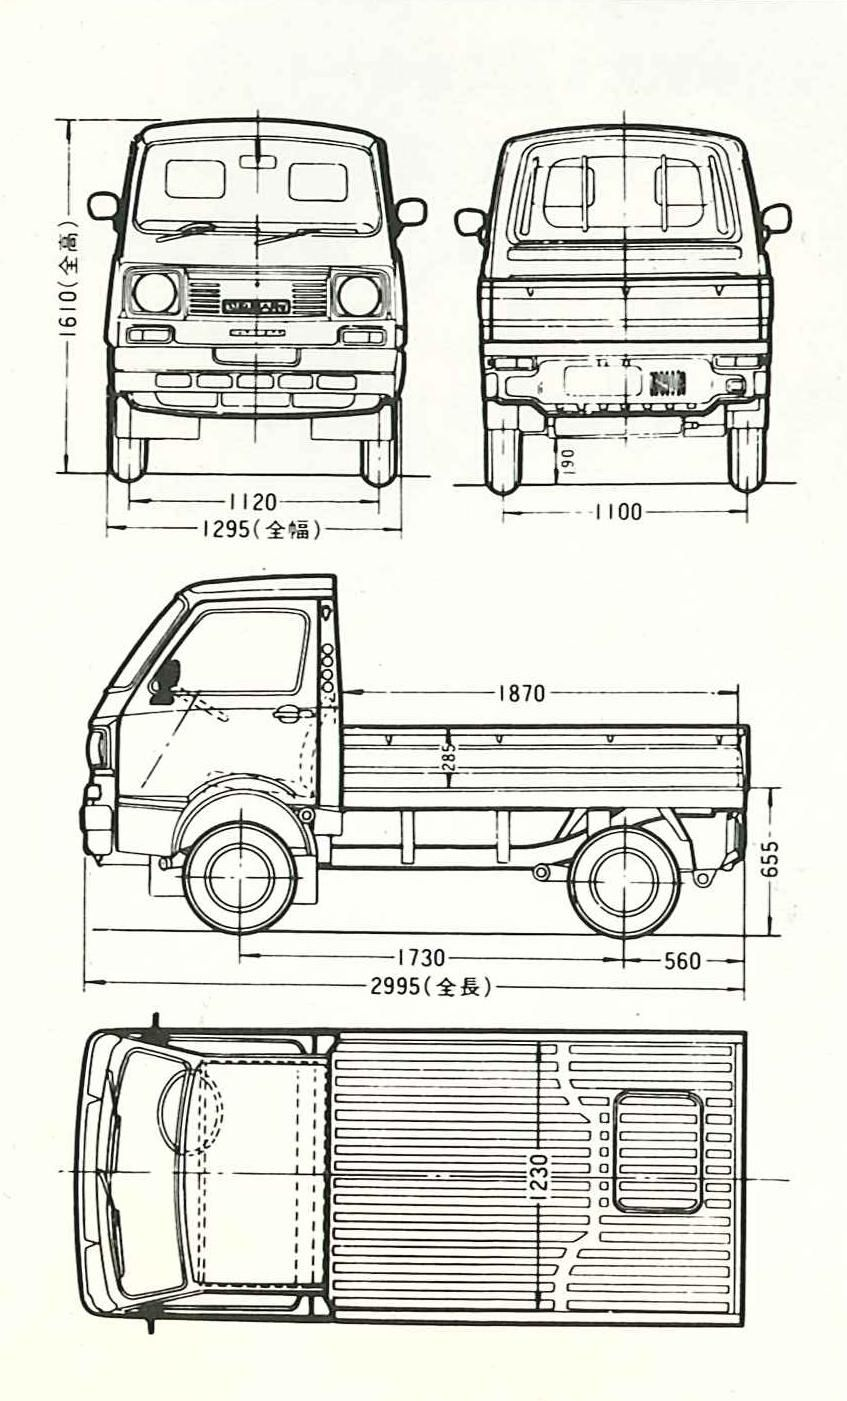 Subaru Sambar blueprint | Blueprint. | Pinterest | Subaru and Cars